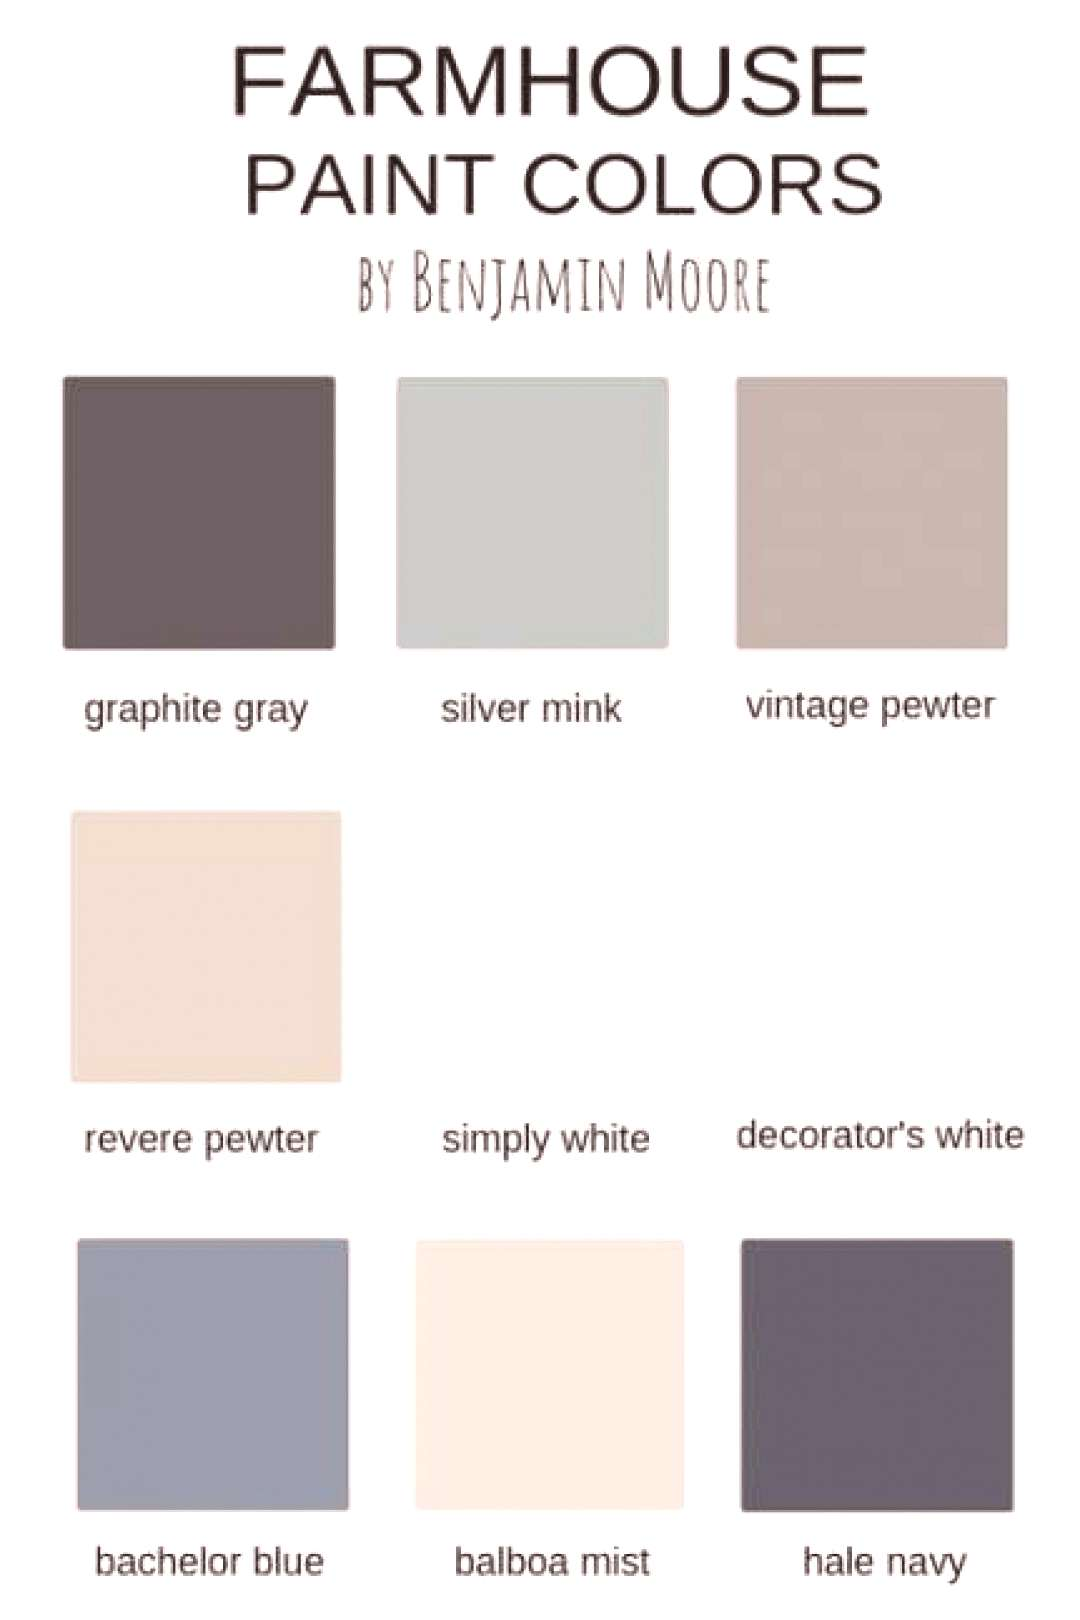 New exterior paint neutral revere pewter ideas New exterior paint neutral revere pewter ideas